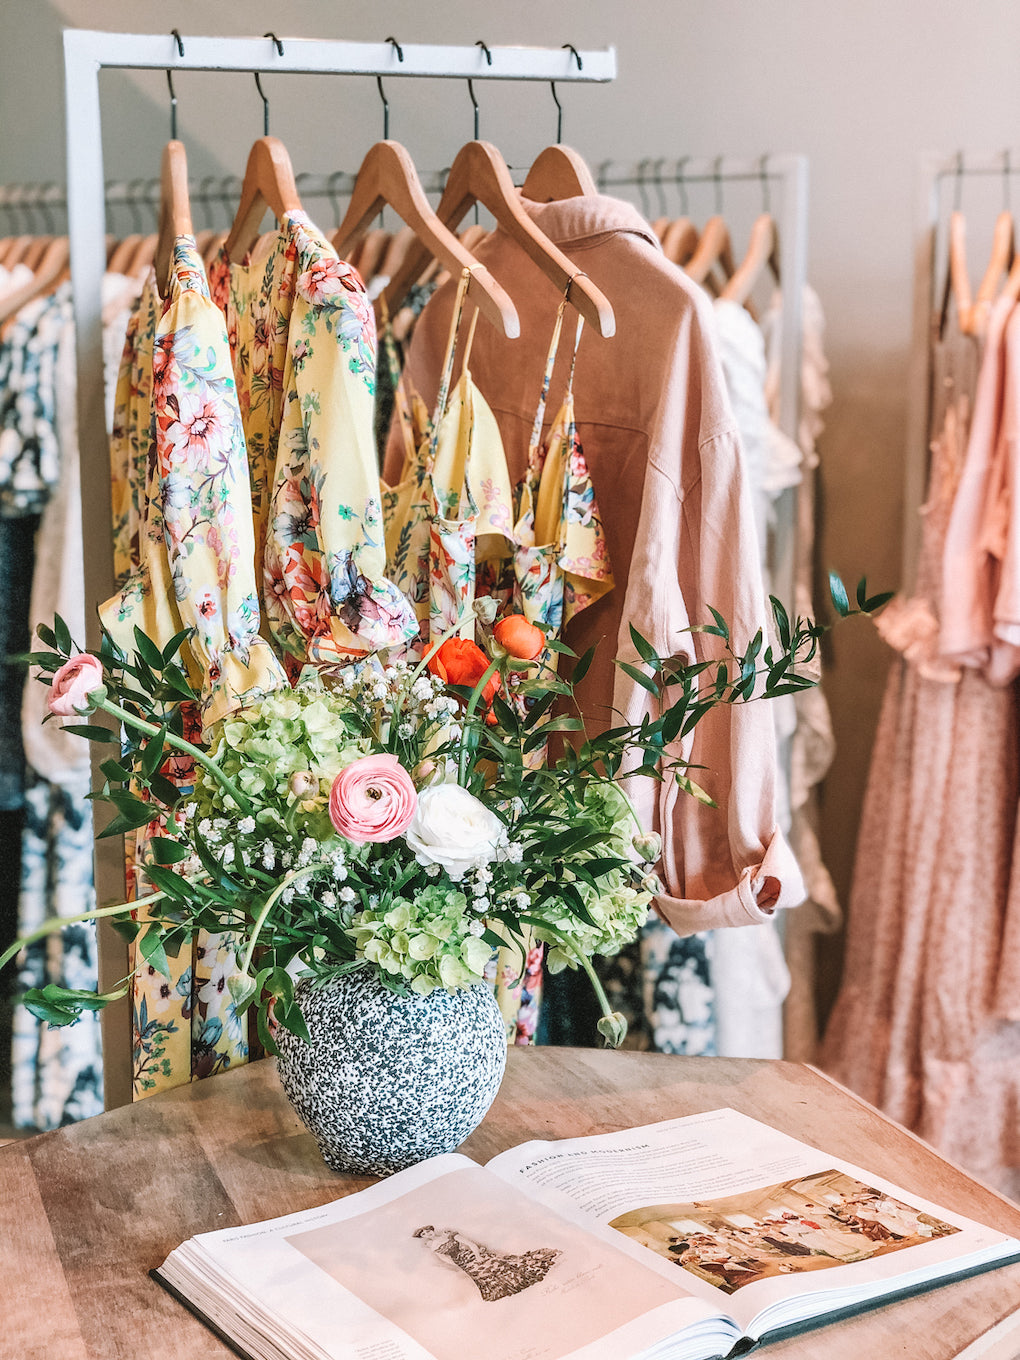 Fleurs of the Week at the SENLIS Robertson Boutique